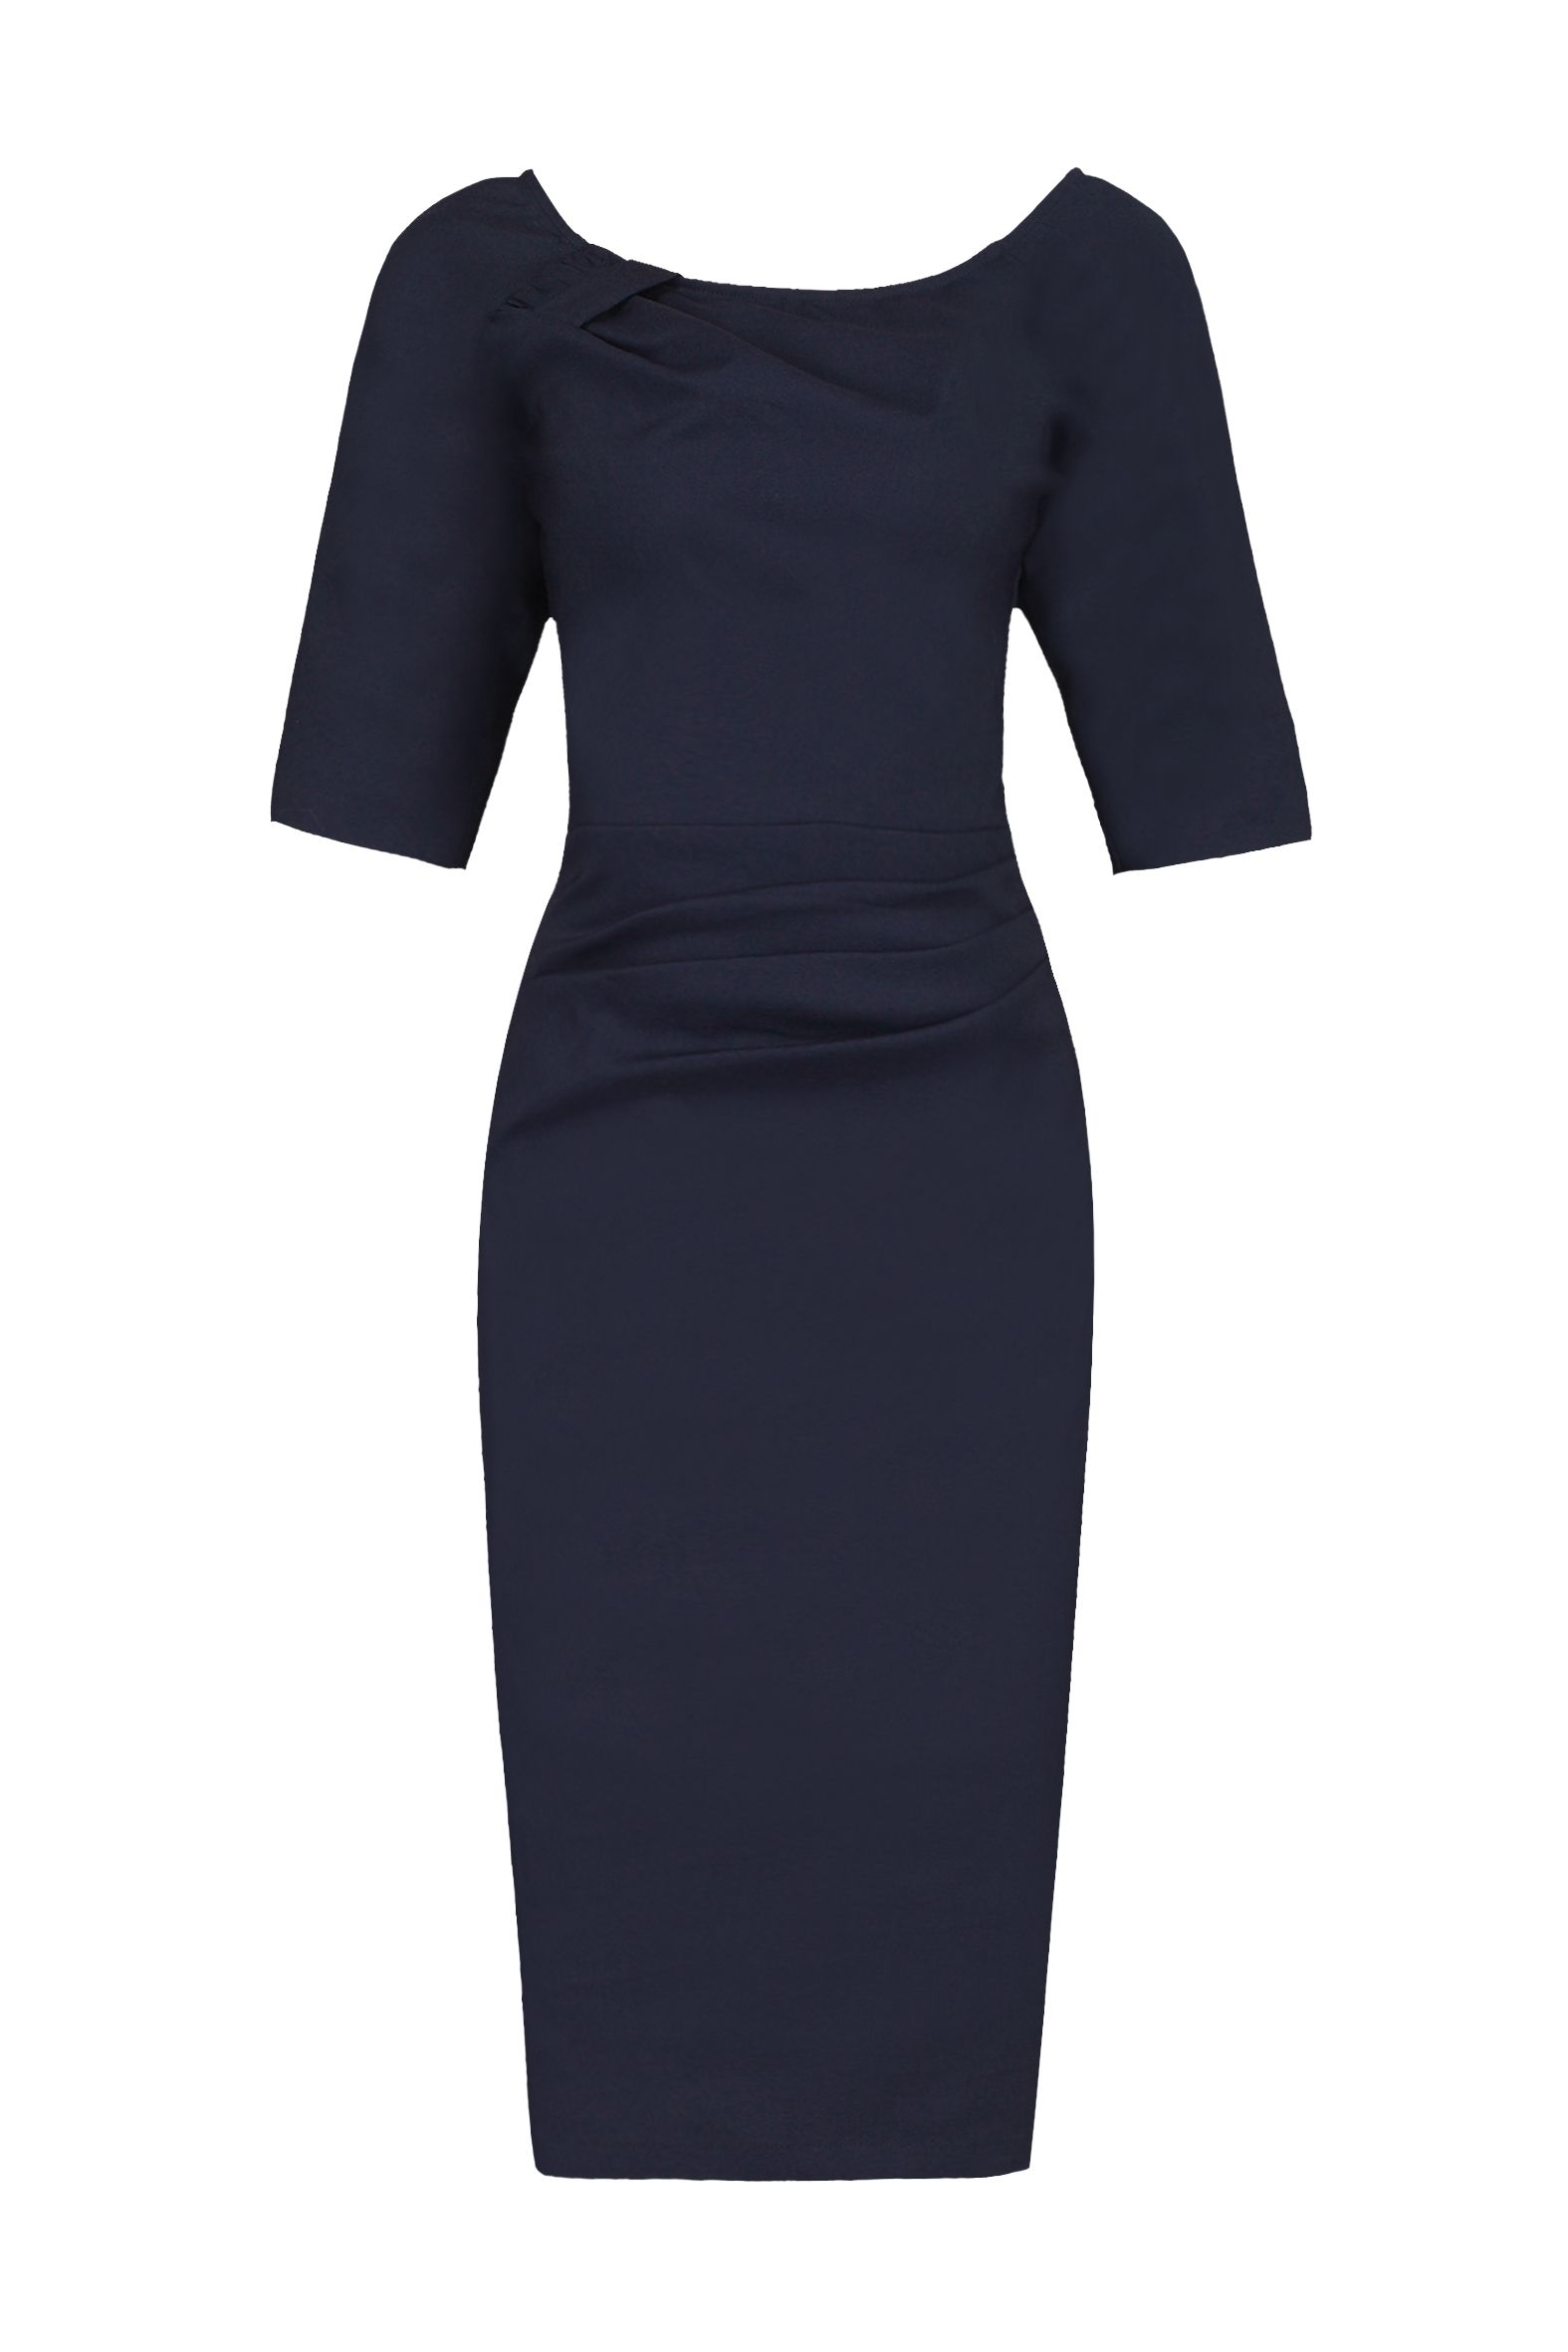 Jolie Moi 12 Sleeve Ruched Wiggle Dress, Blue